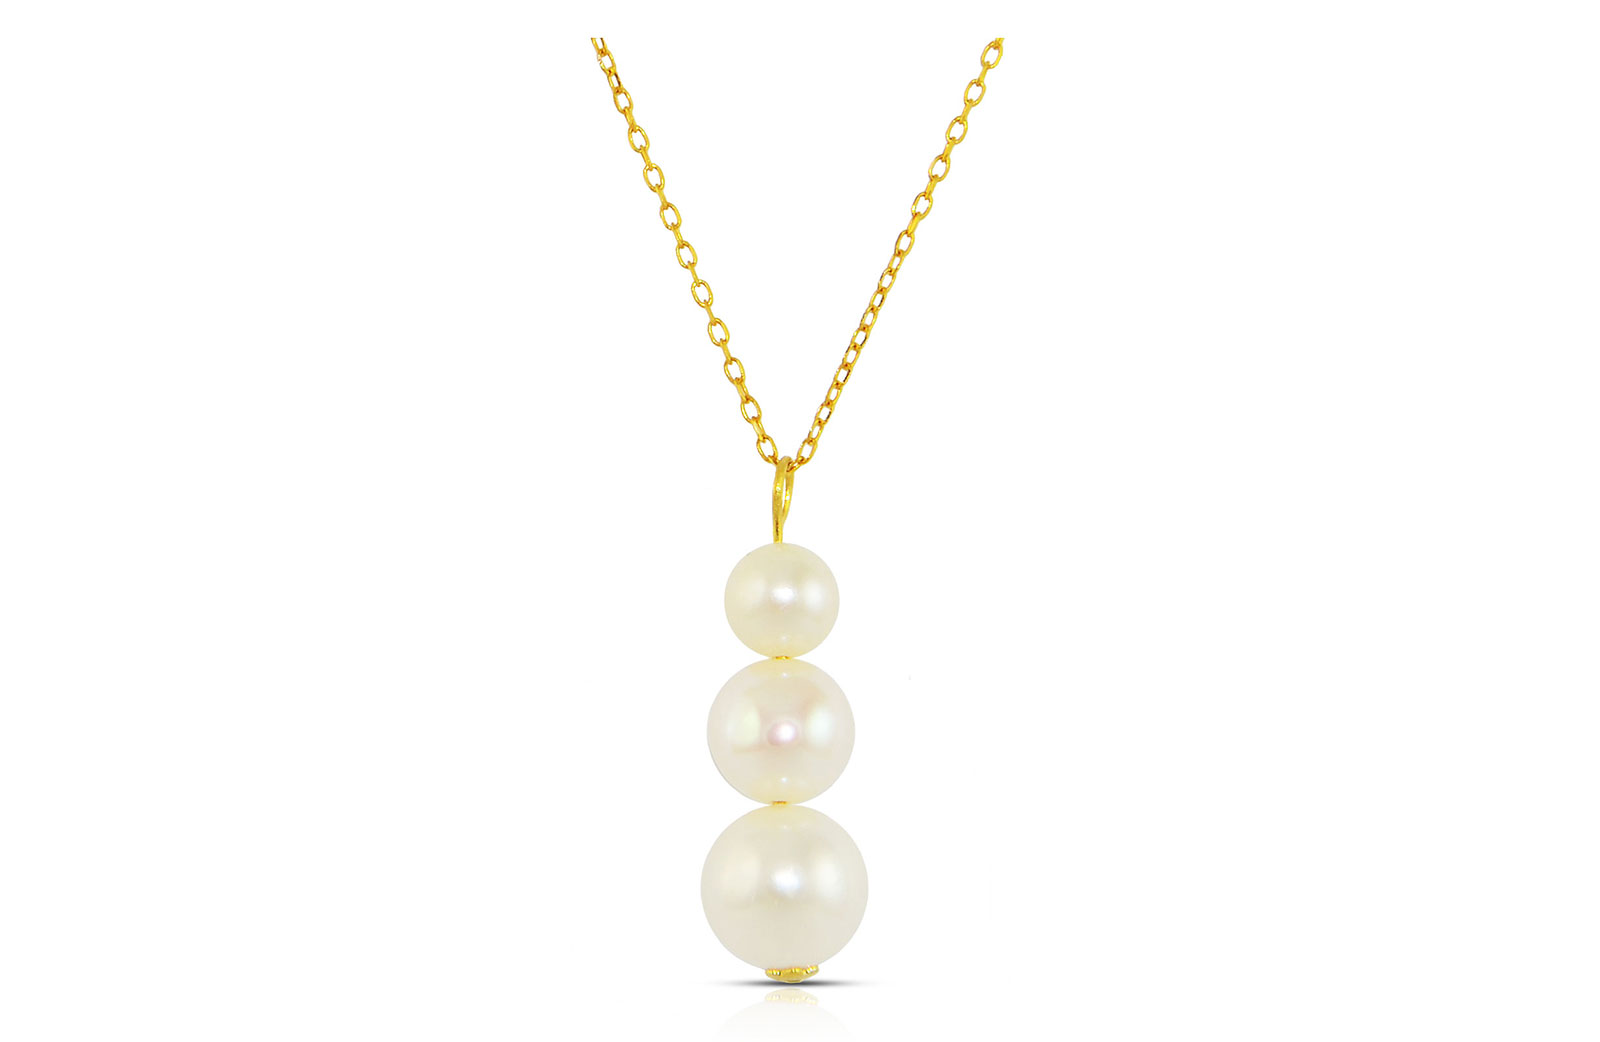 Vera Perla 18K Gold Genuine Pearls Journey Necklace